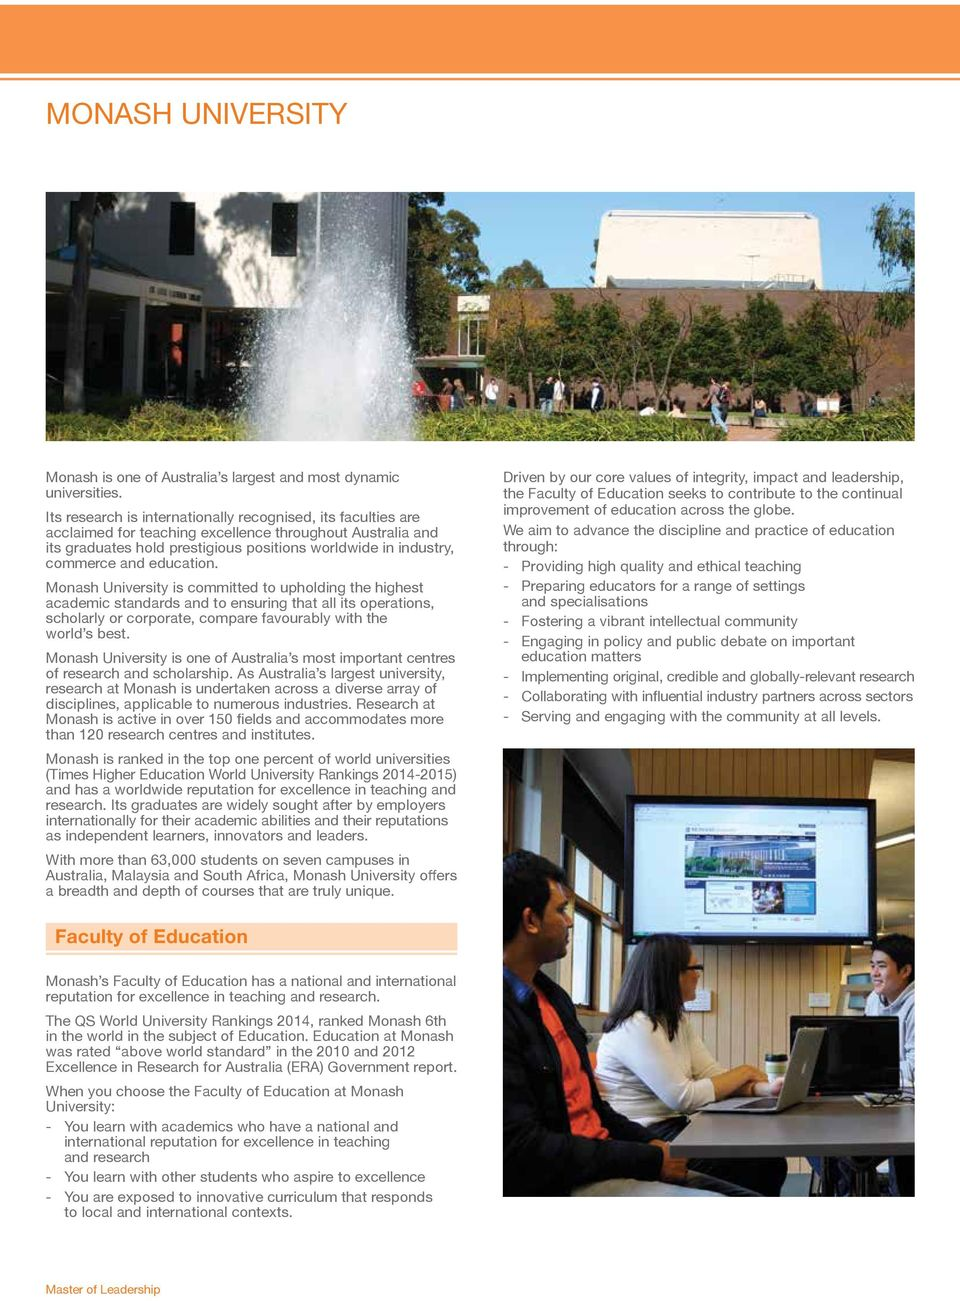 education. Monash University is committed to upholding the highest academic standards and to ensuring that all its operations, scholarly or corporate, compare favourably with the world s best.